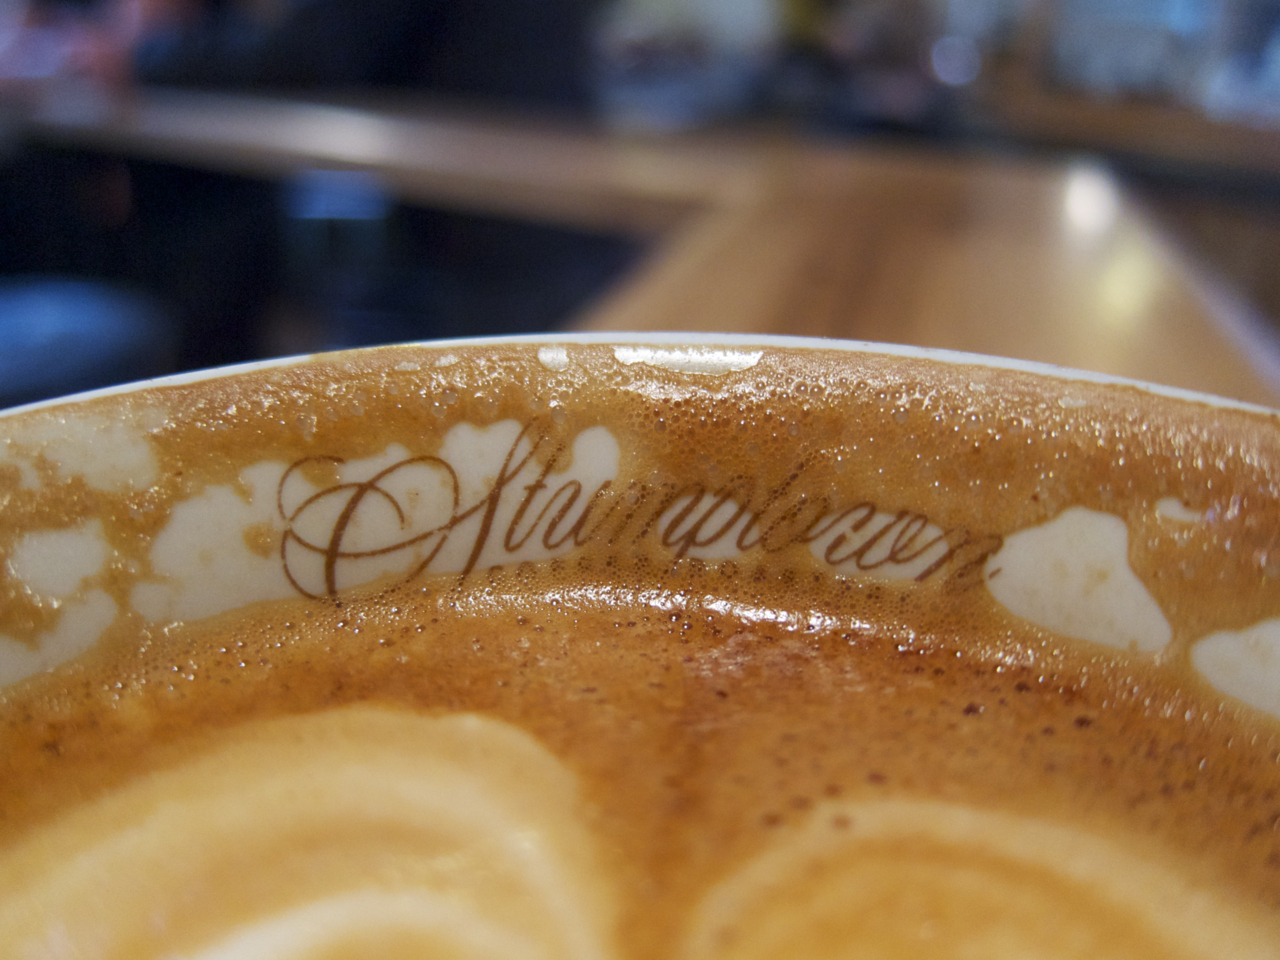 A cappuccino at the original Stumptown in Portland. To my surprise, some of the best shots of their Hairbender espresso blend that I had weren't served at Stumptown, but at coffee bars in Portland and Los Angeles.